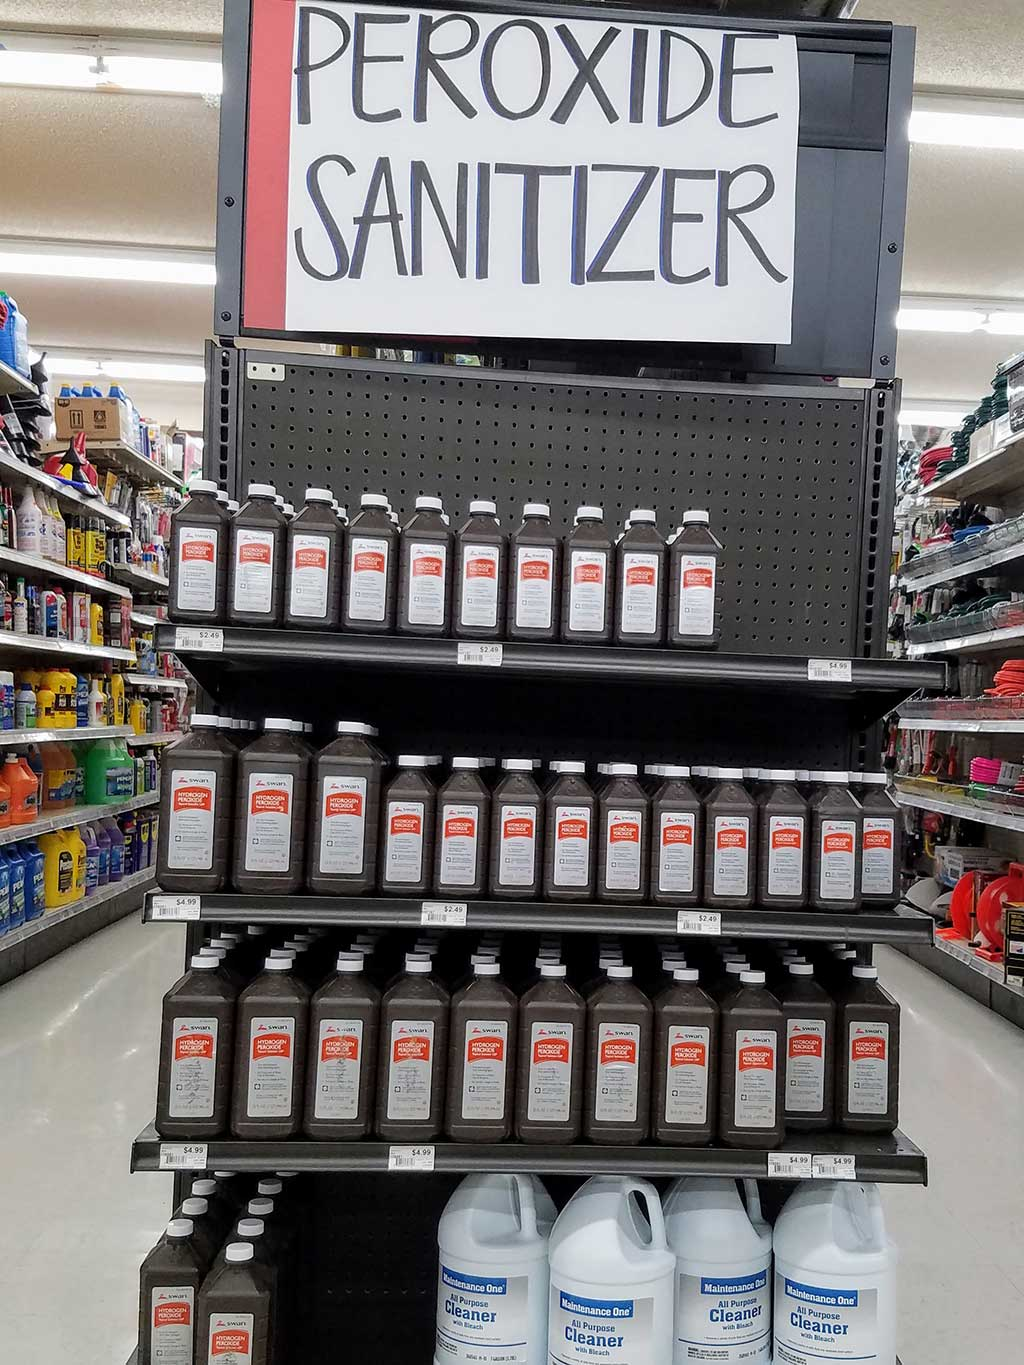 Peroxide Sanitizer